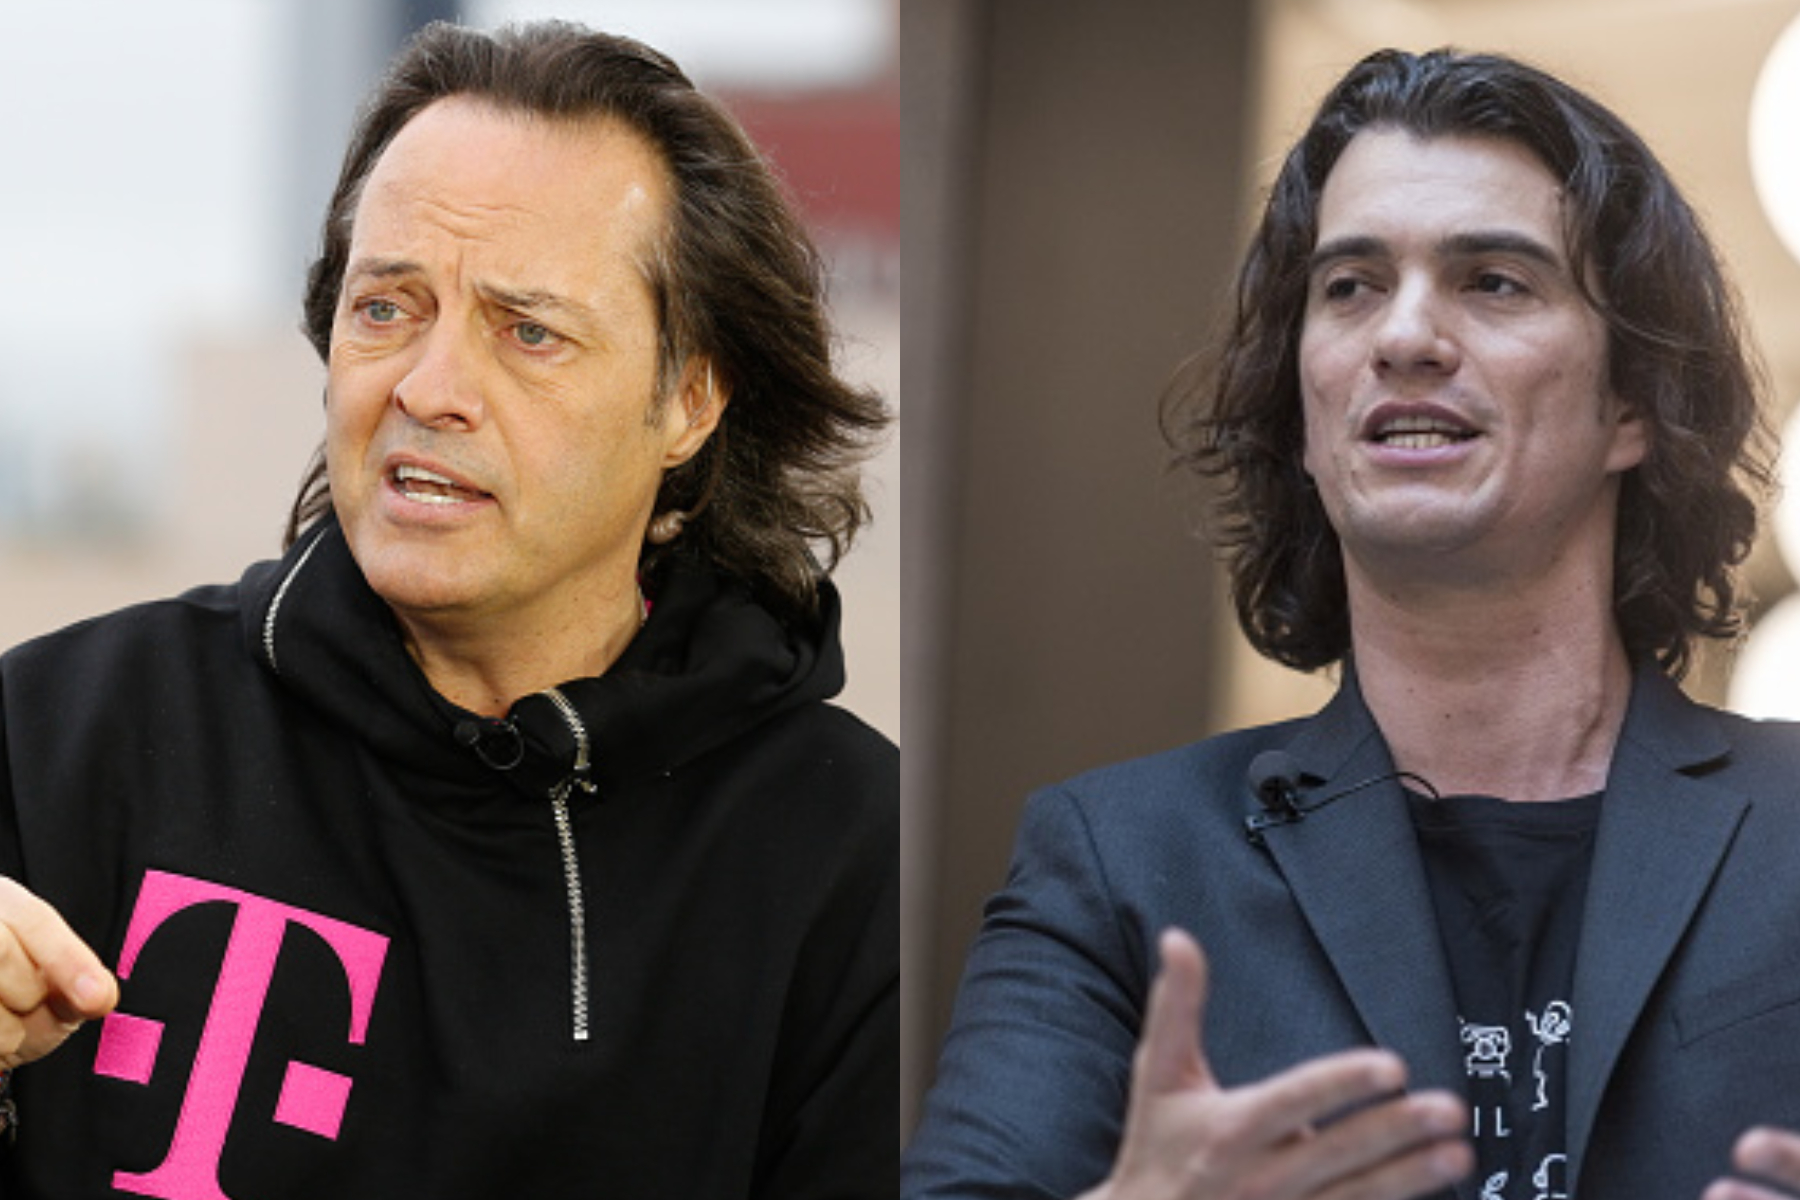 WeWork is reportedly in talks to hire a new CEO, and he's a character